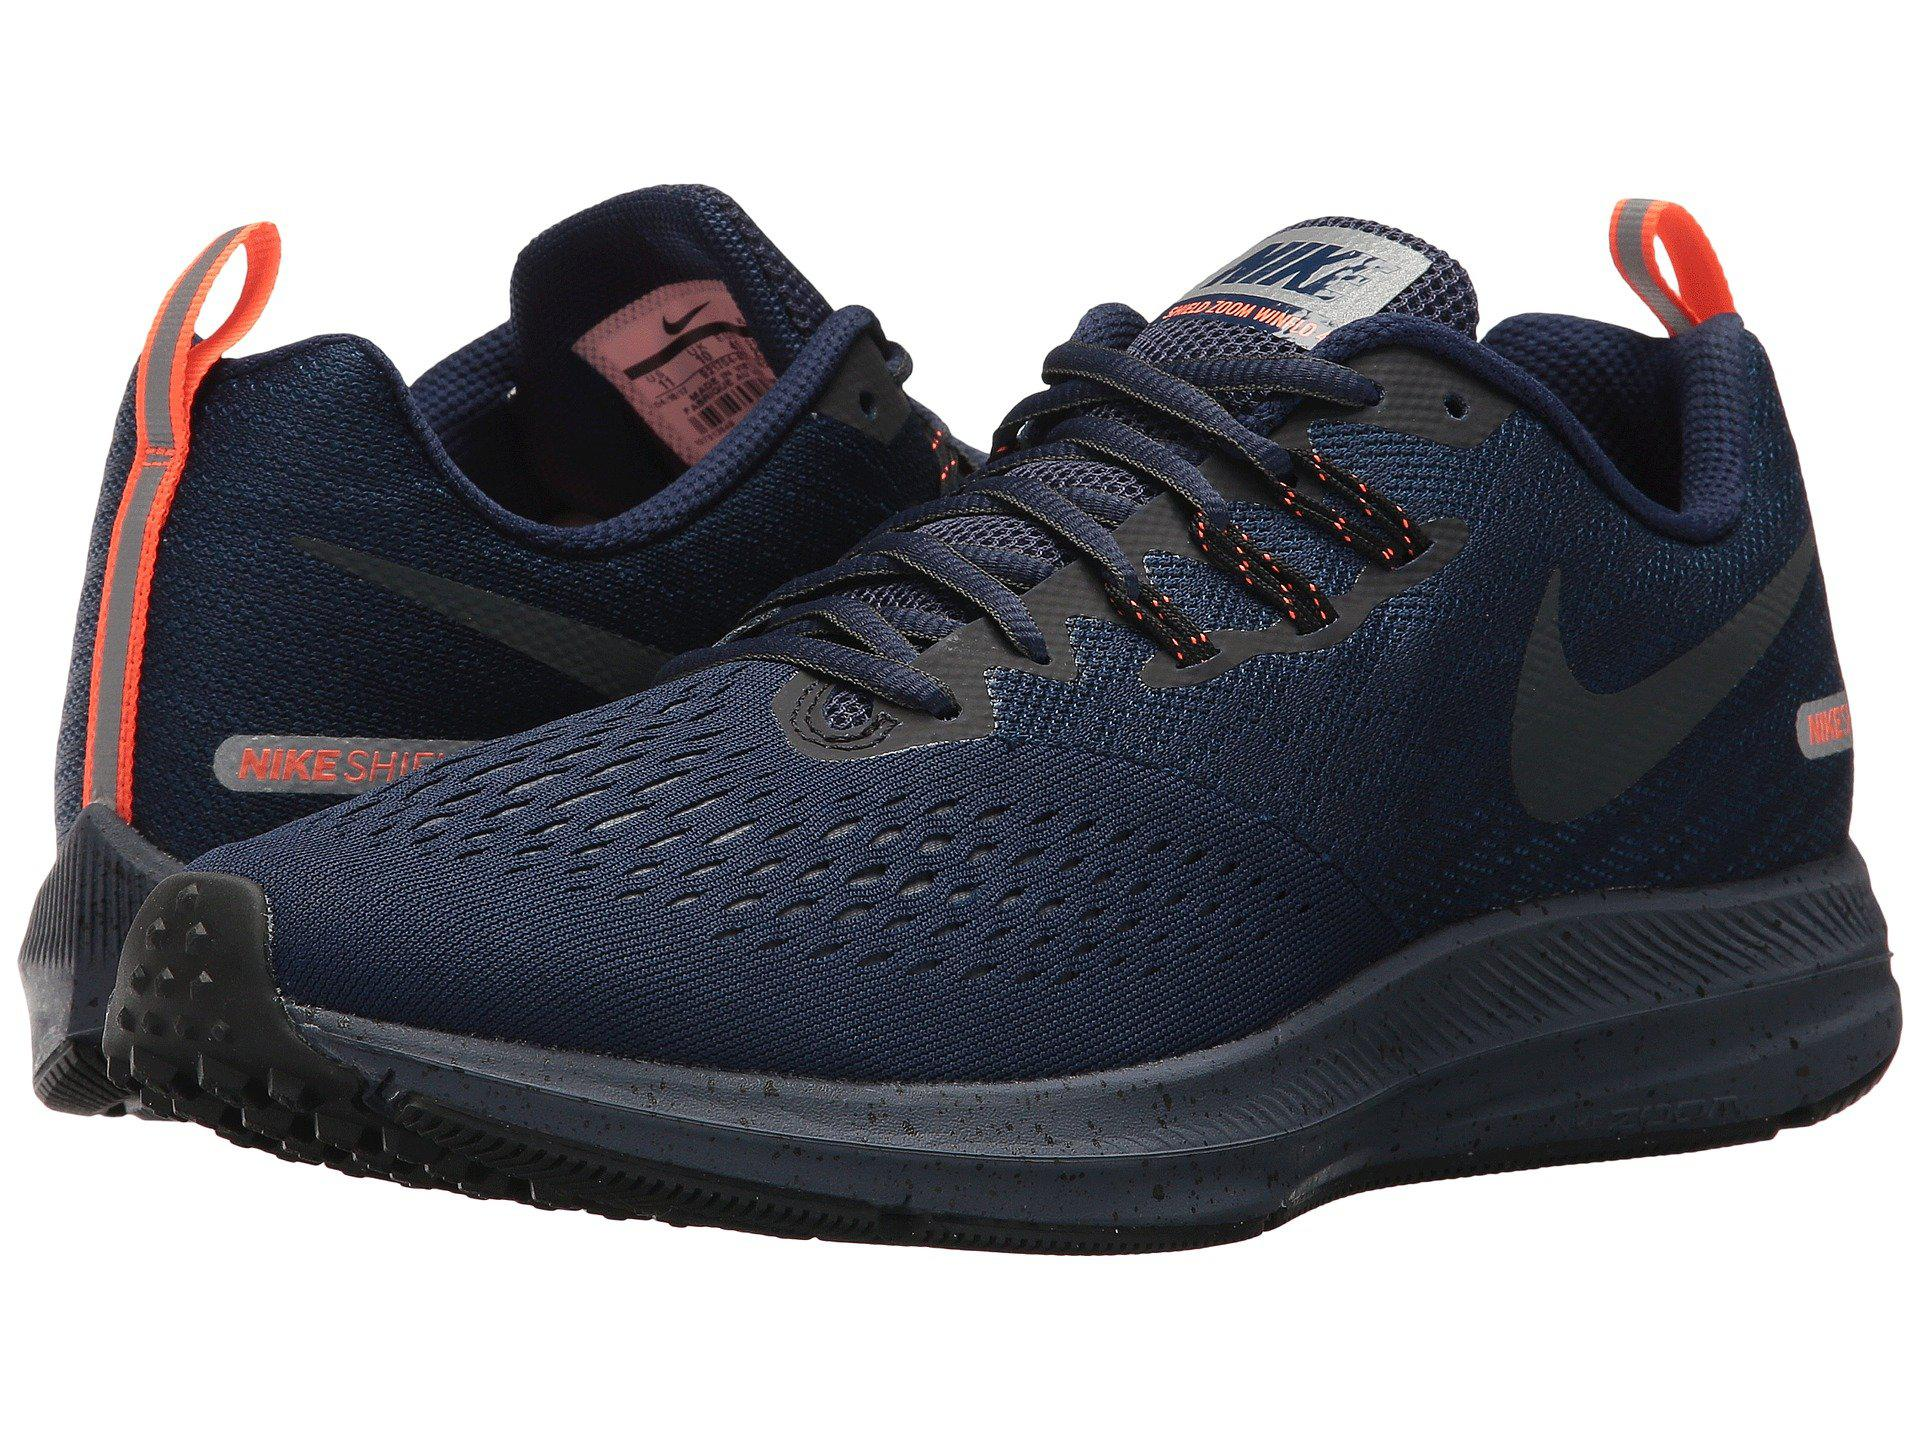 sneakers for cheap 0d5a4 ab52c Nike Blue Air Zoom Winflo 4 Shield for men